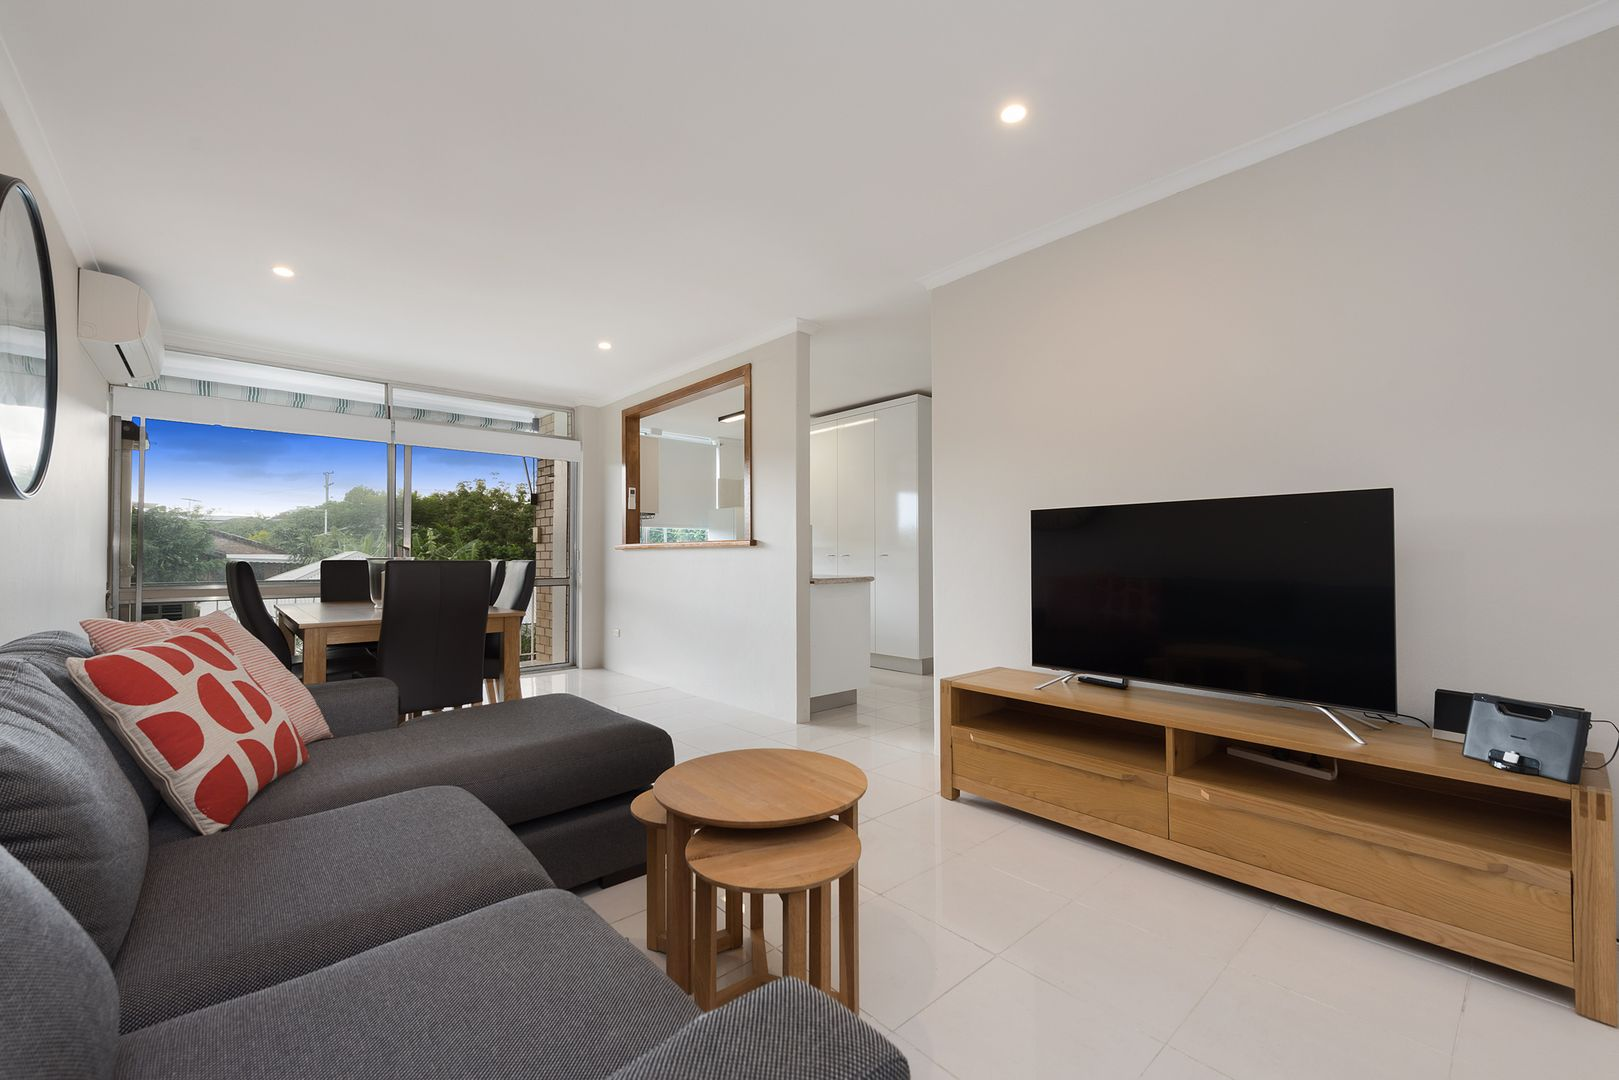 4/15 Newcross Street, Indooroopilly QLD 4068, Image 2